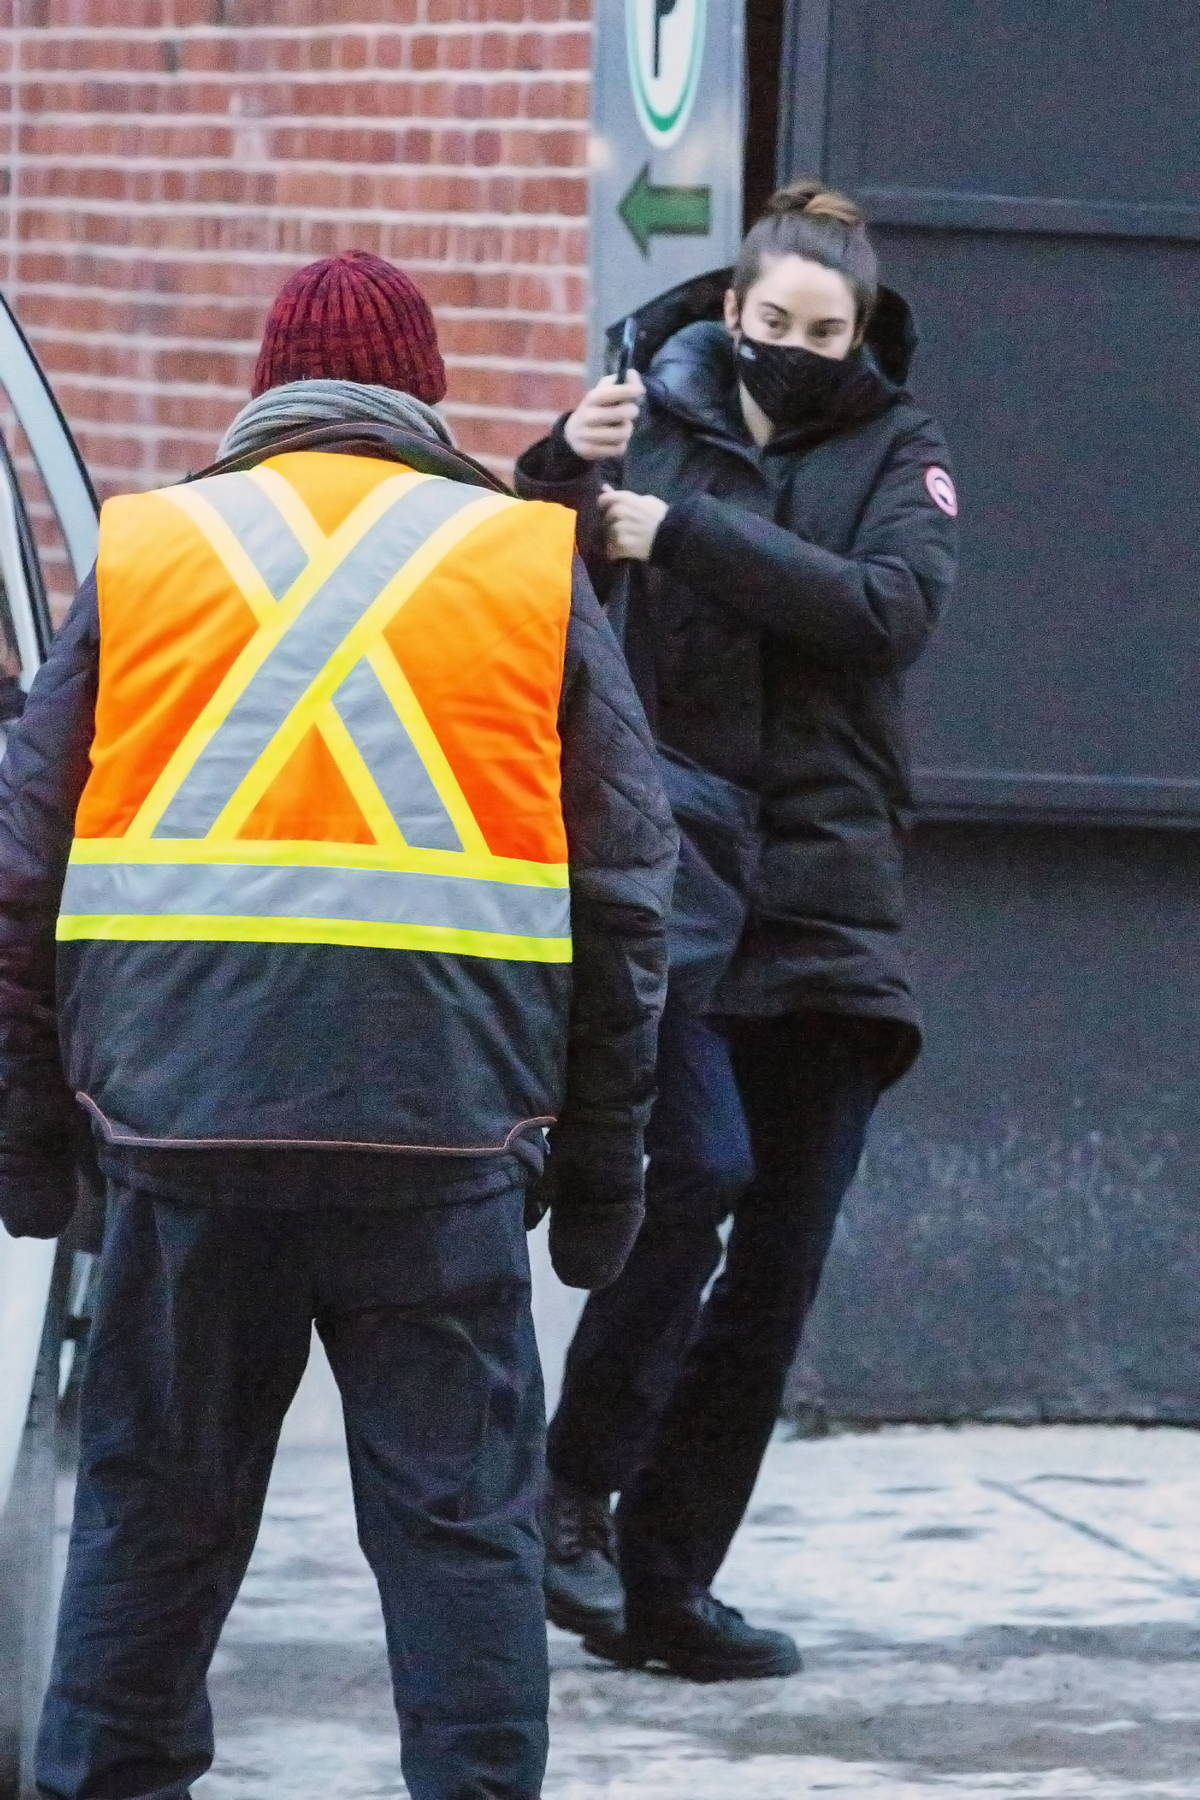 Shailene Woodley spotted as she arrives on the set of her new movie 'Misanthrope' in Montreal, Canada